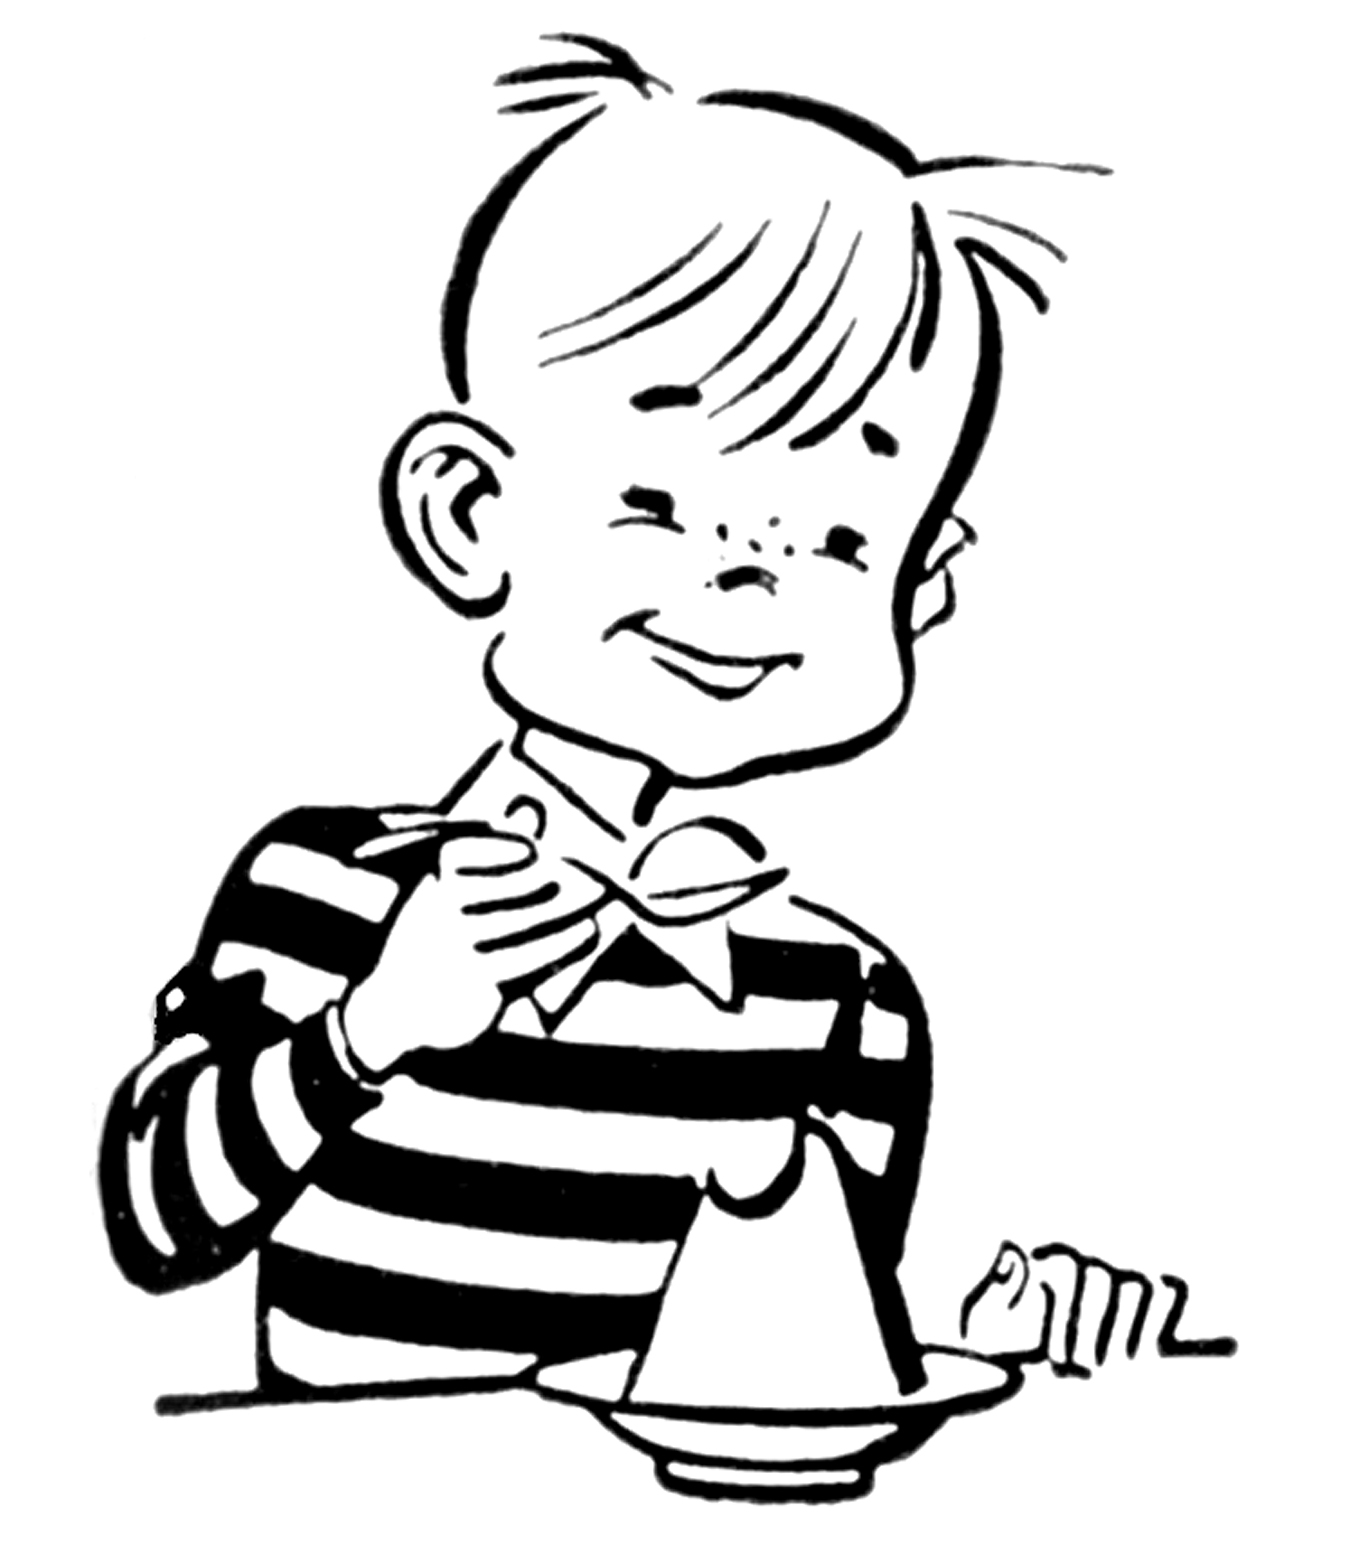 Line Art For Kids : Line art for children clipart best